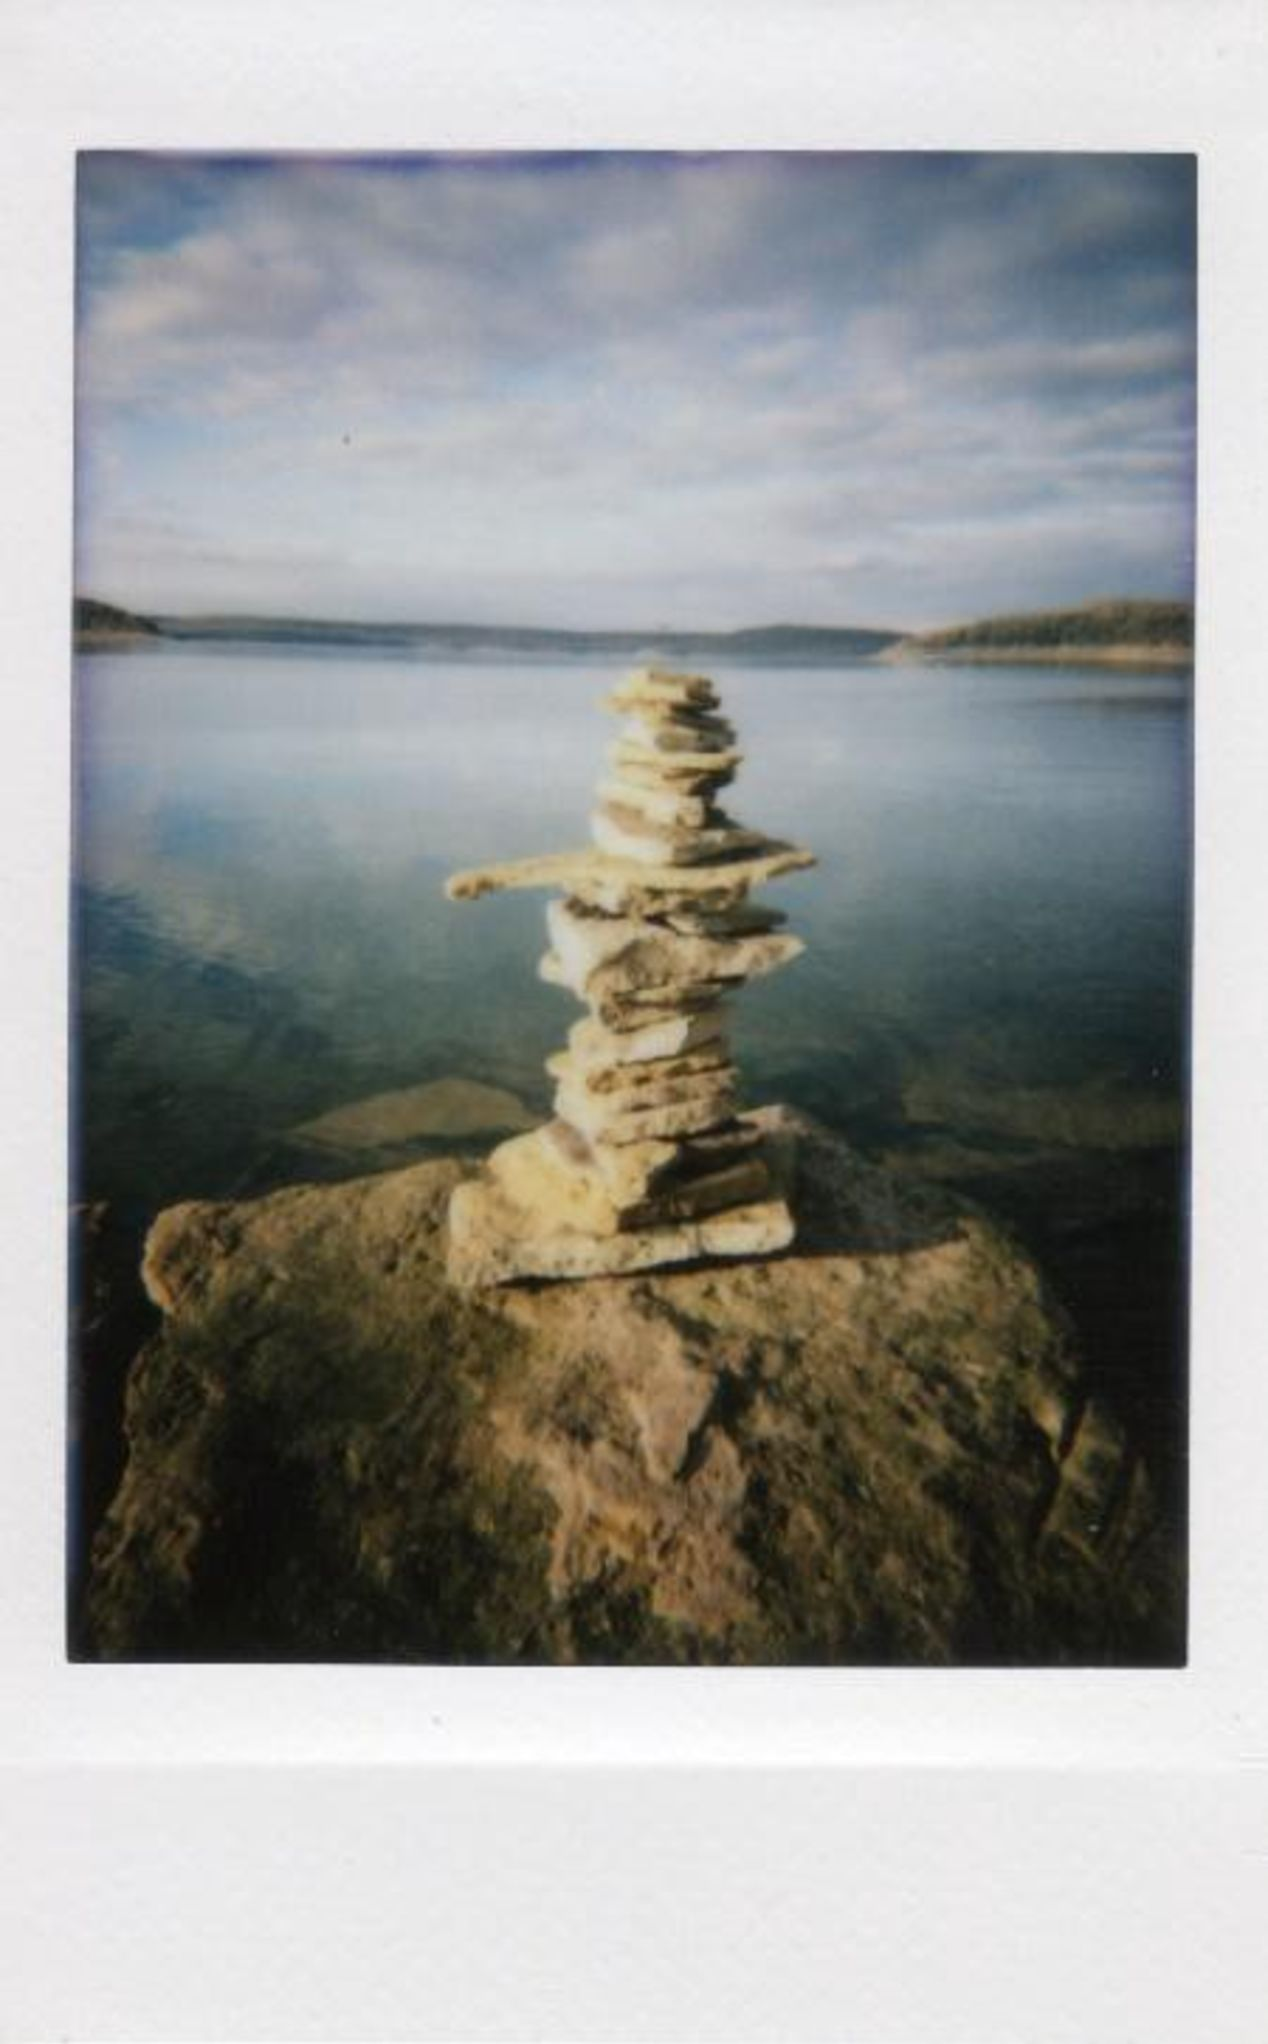 Photo of Lake Tenkiller in Oklahoma of some rocks stacked by the water. Taken with Lomo Instant Mini.